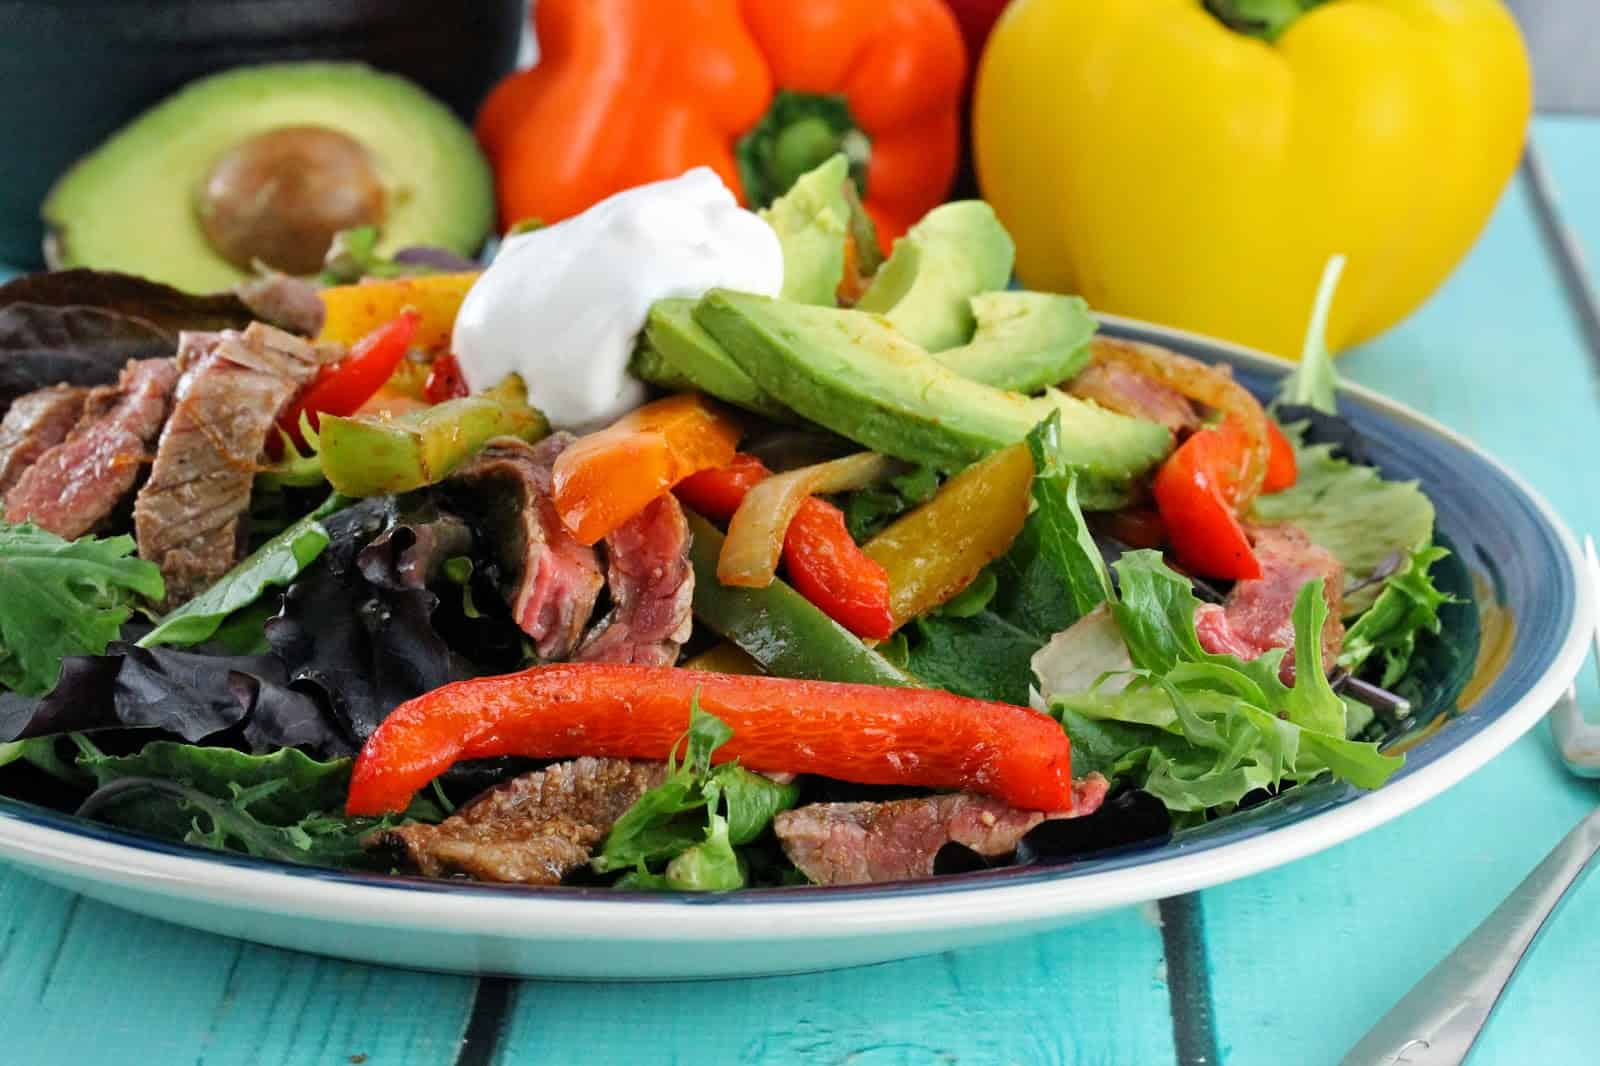 Fajita salad on a blue and white plate.